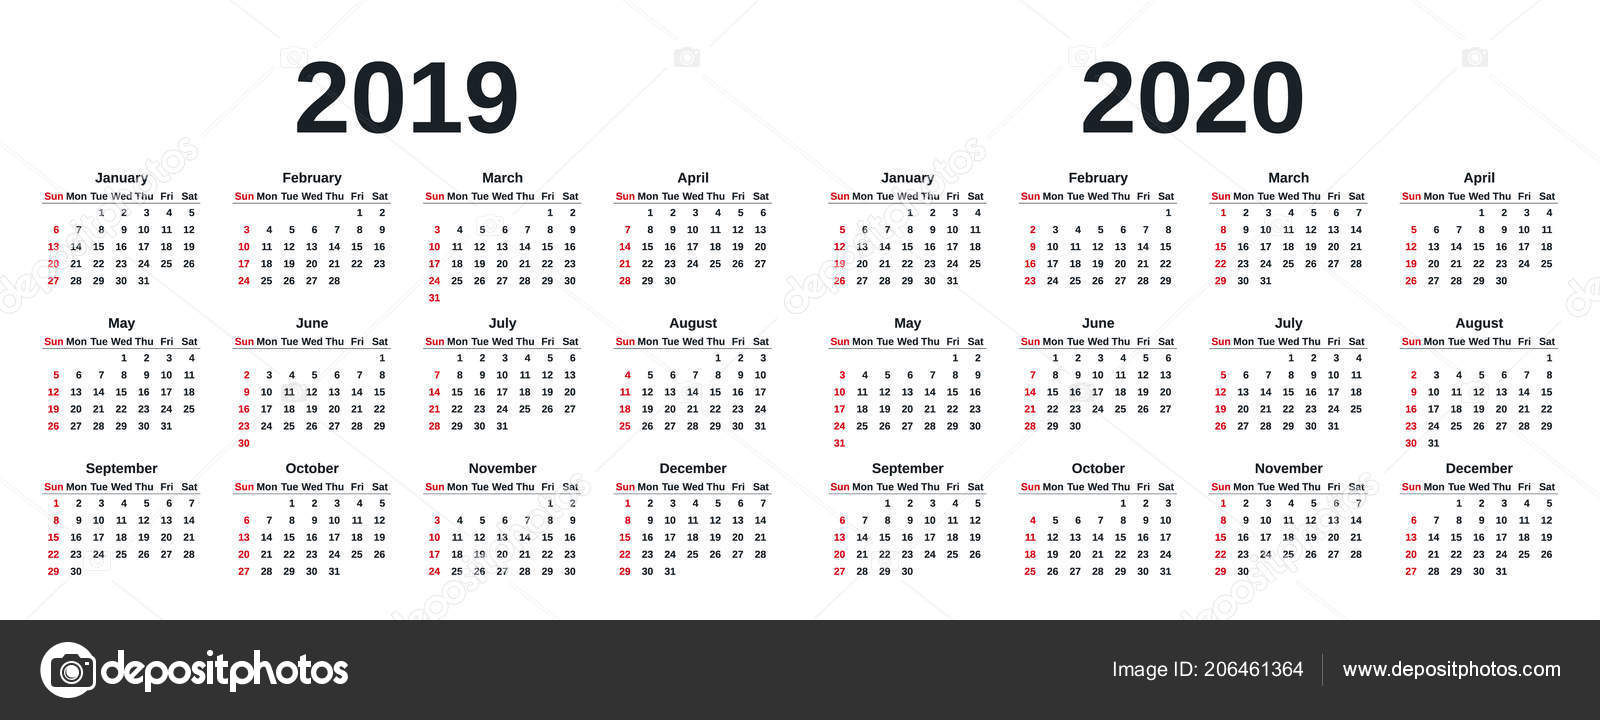 2019 2020 Calendar Vector Graphics Week Starts Sunday Design intended for 2020 Calendar Monday To Sunday